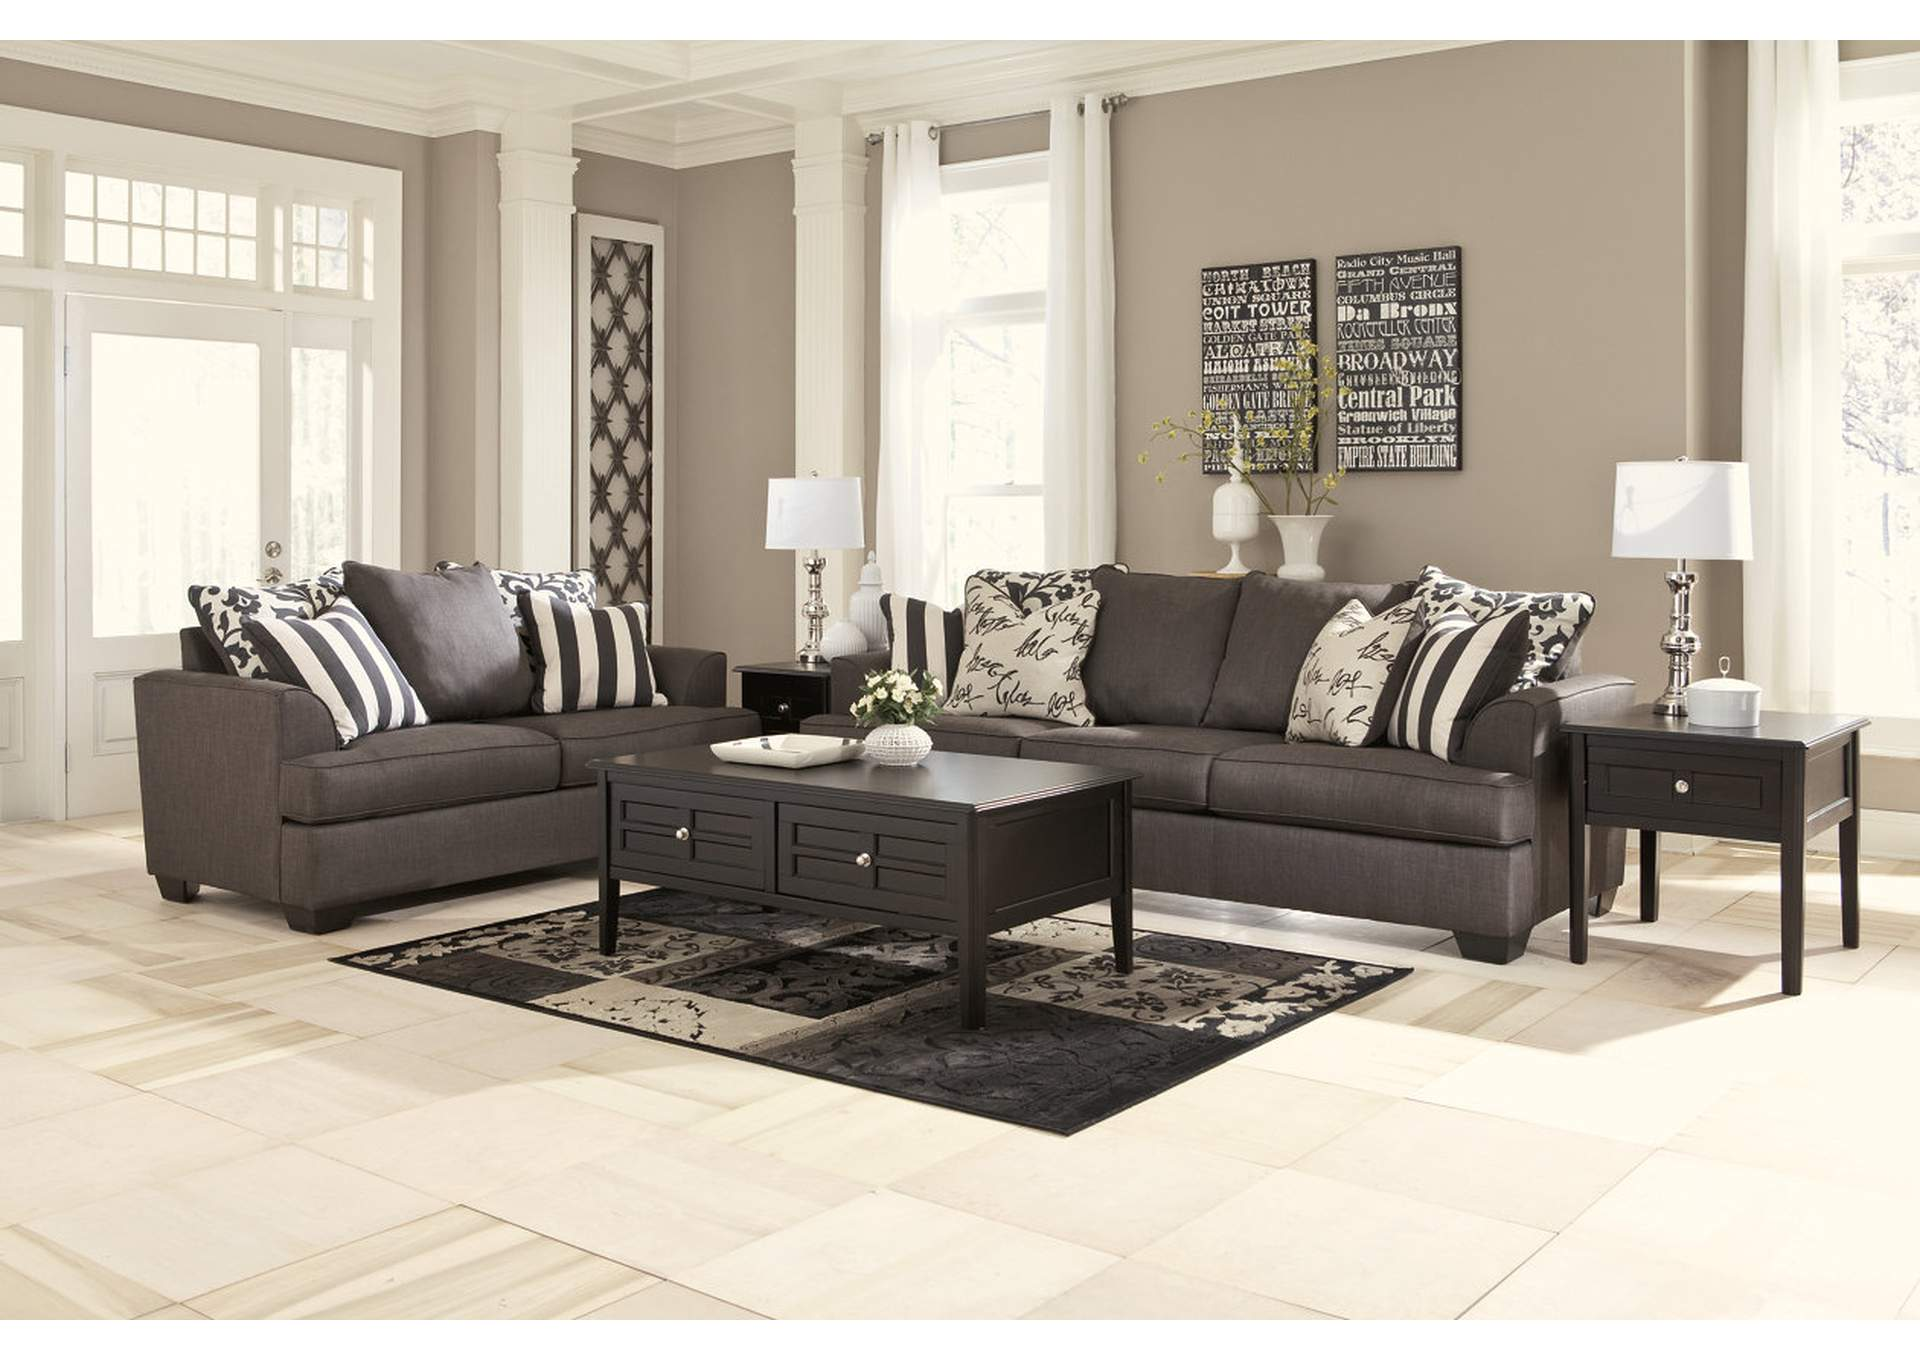 Lovely Overstock Furniture   Langley Park, Catonsville, Alexandria U0026 Lanham Levon  Charcoal Sofa U0026 Loveseat